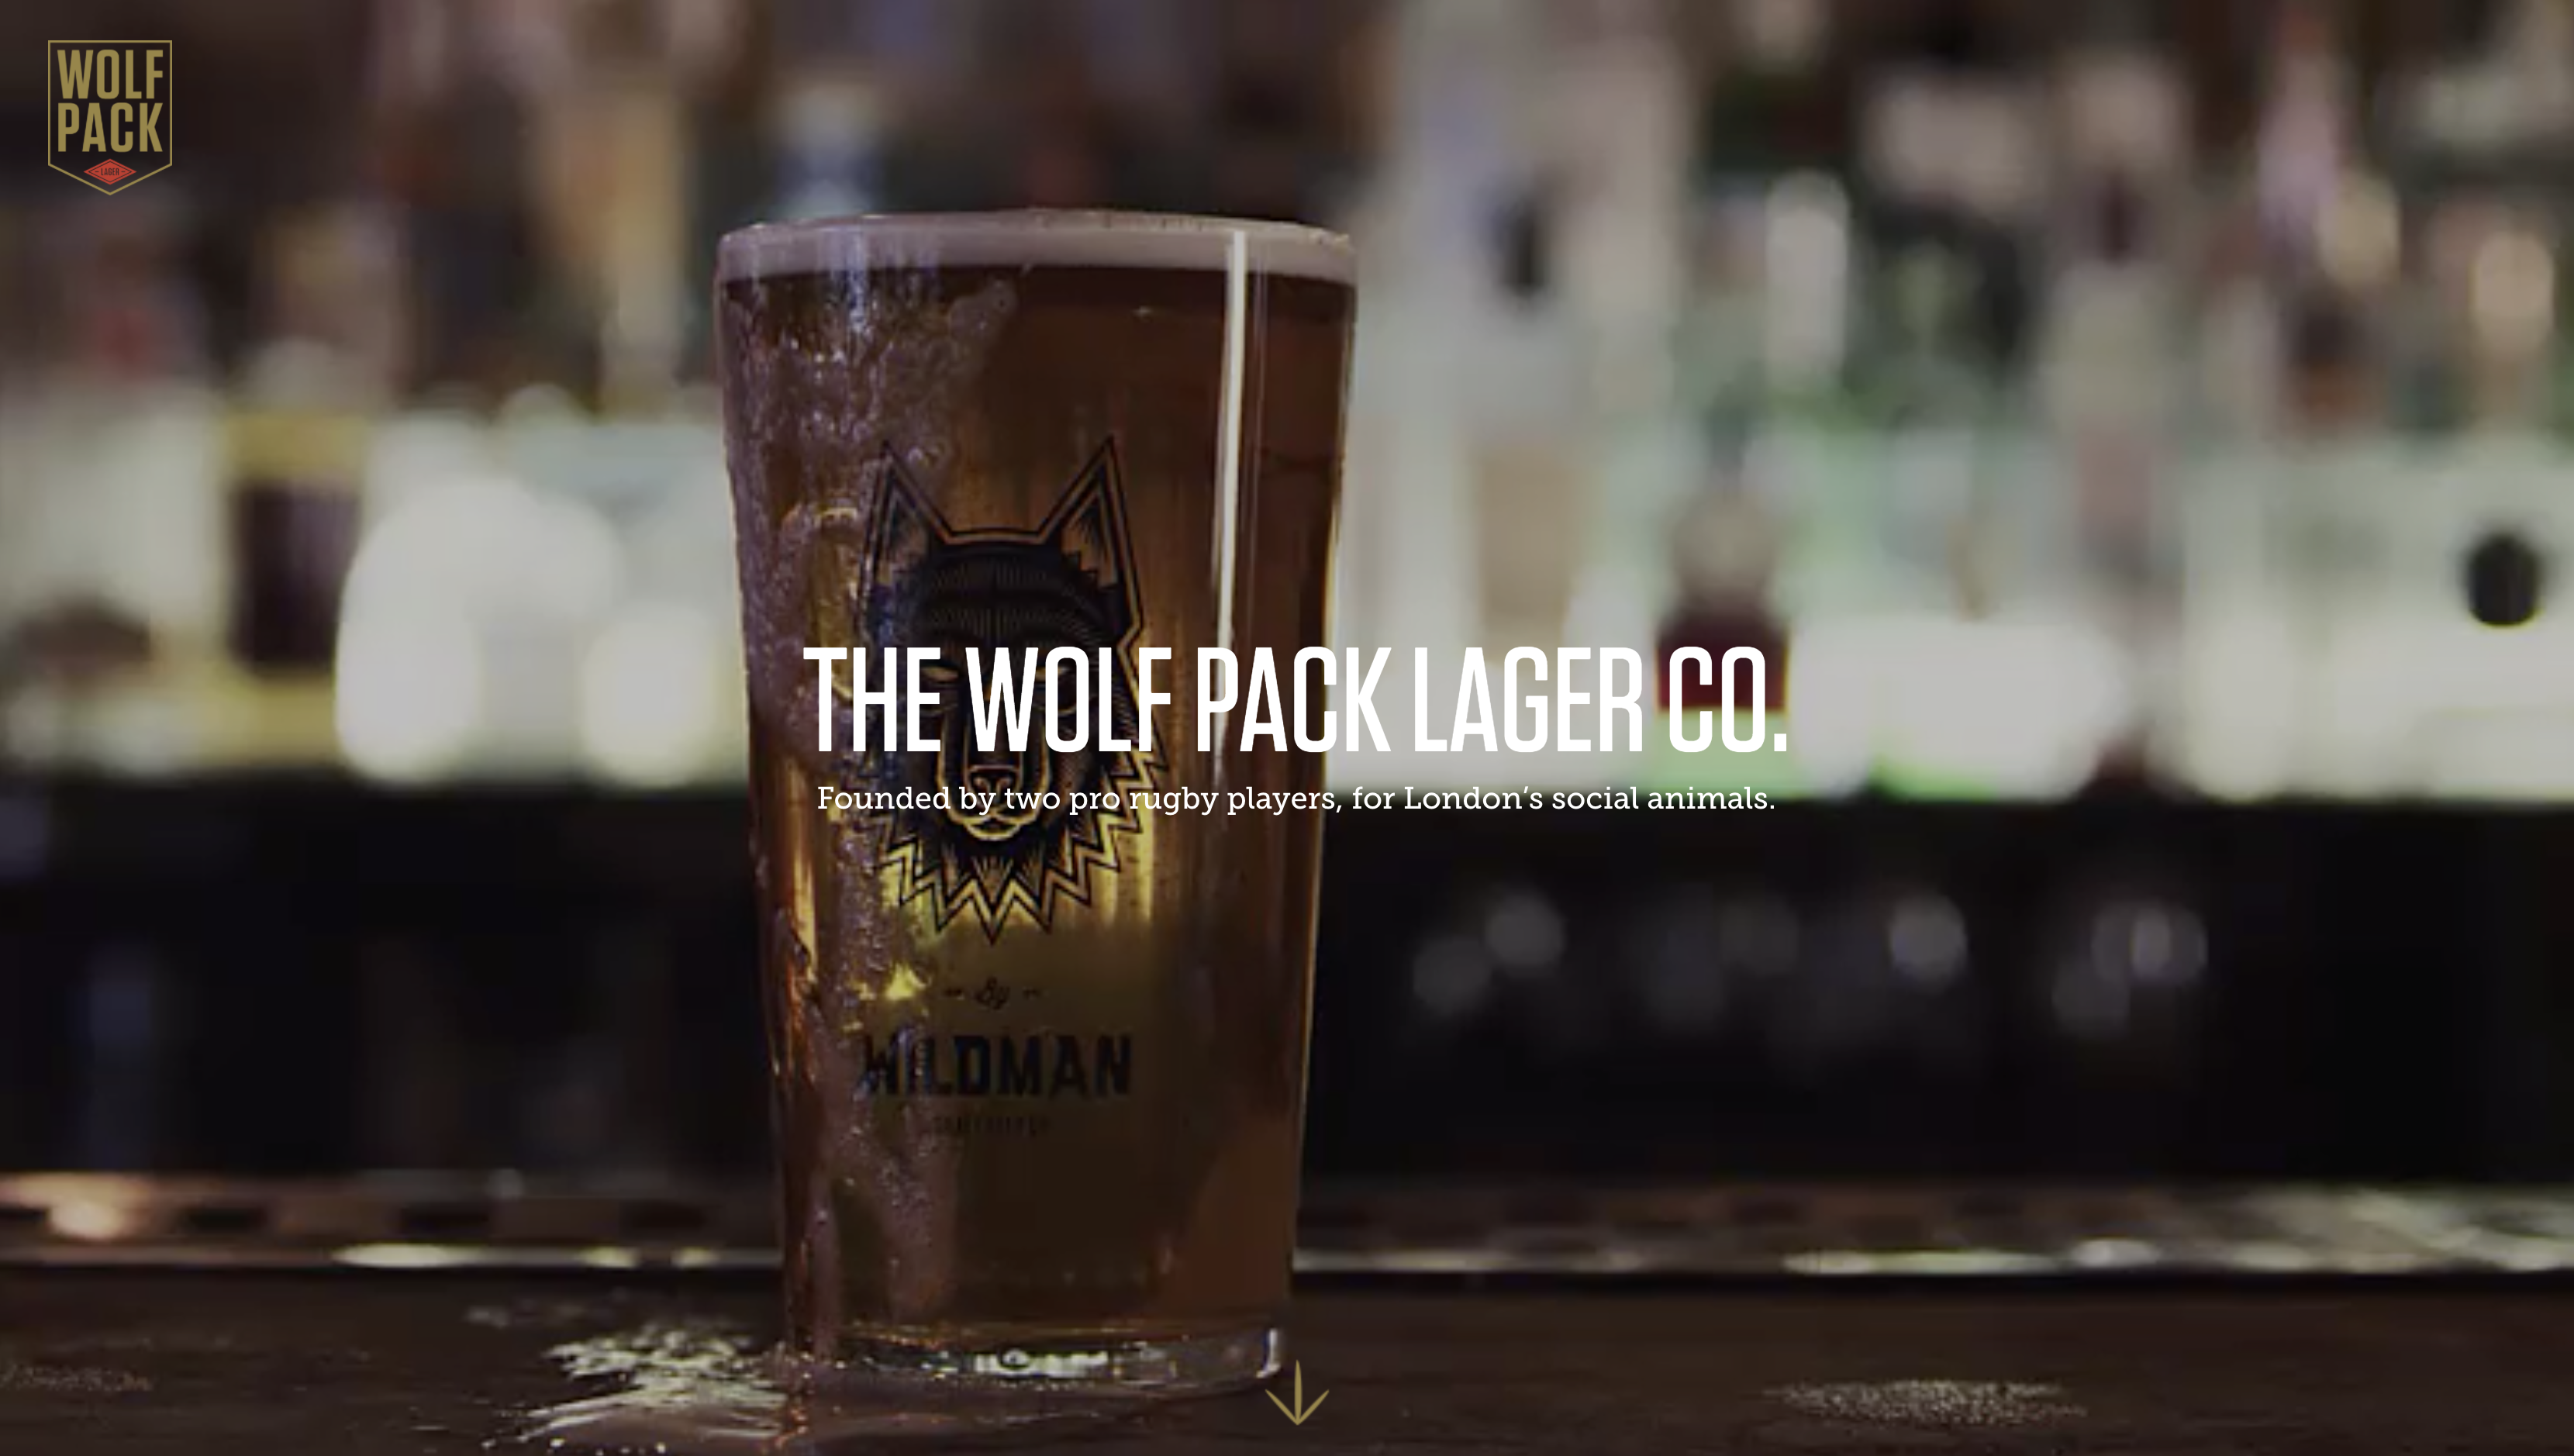 Wolf Pack Lager